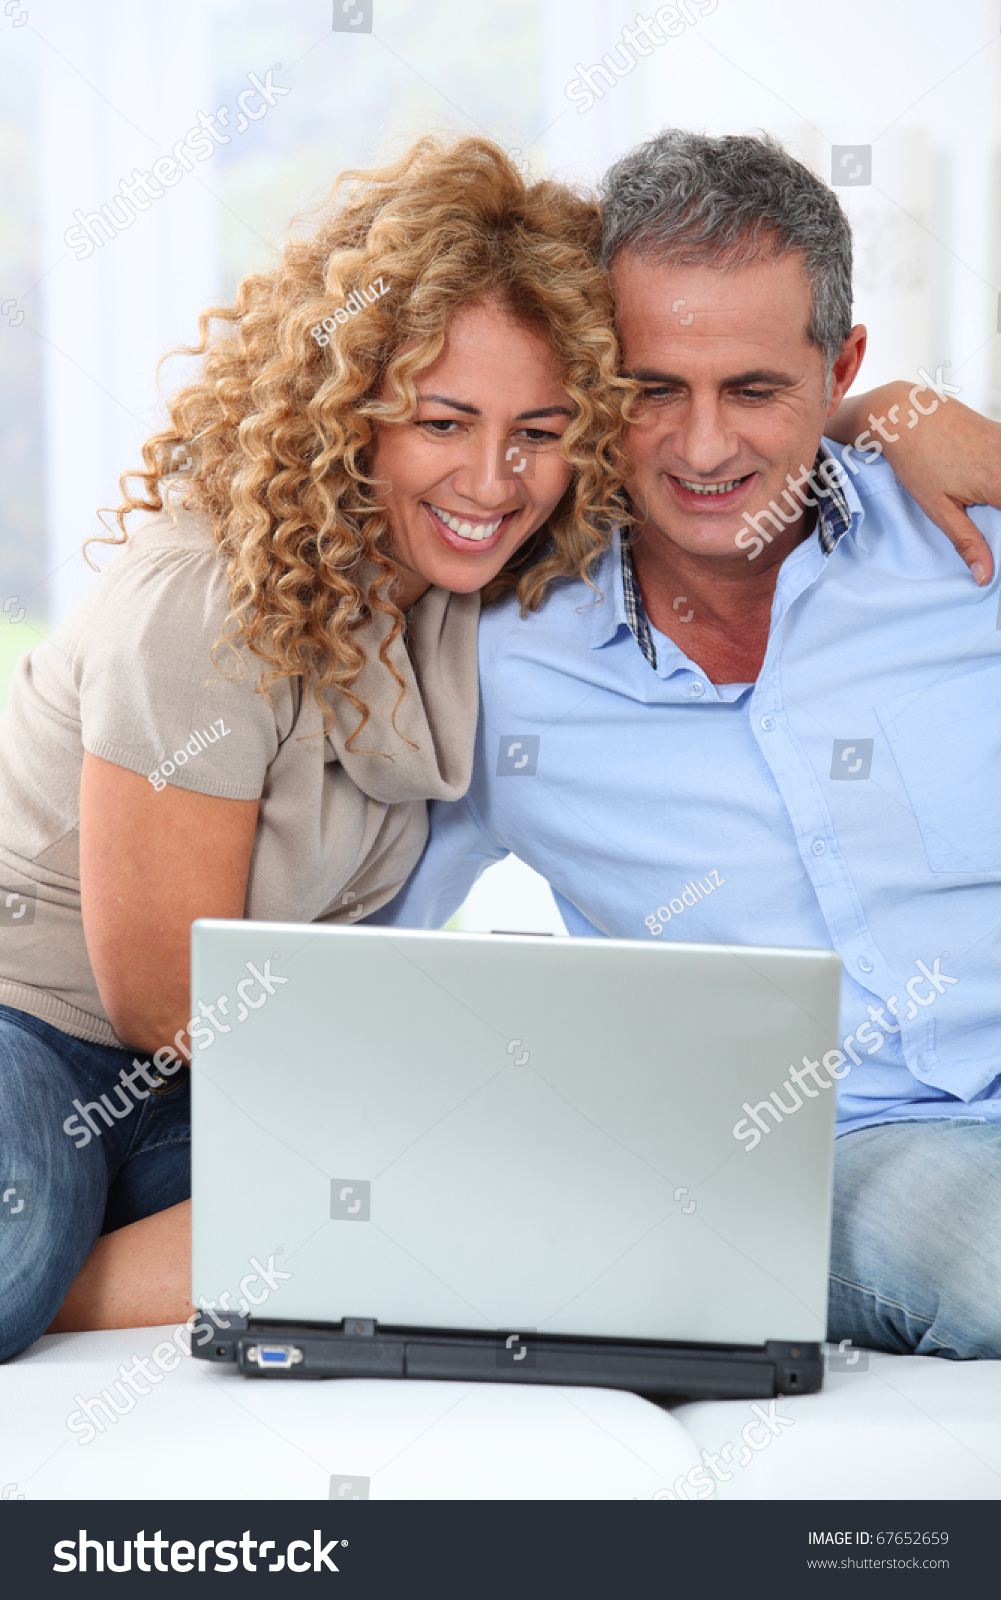 Couple surfing on internet at home #67652659